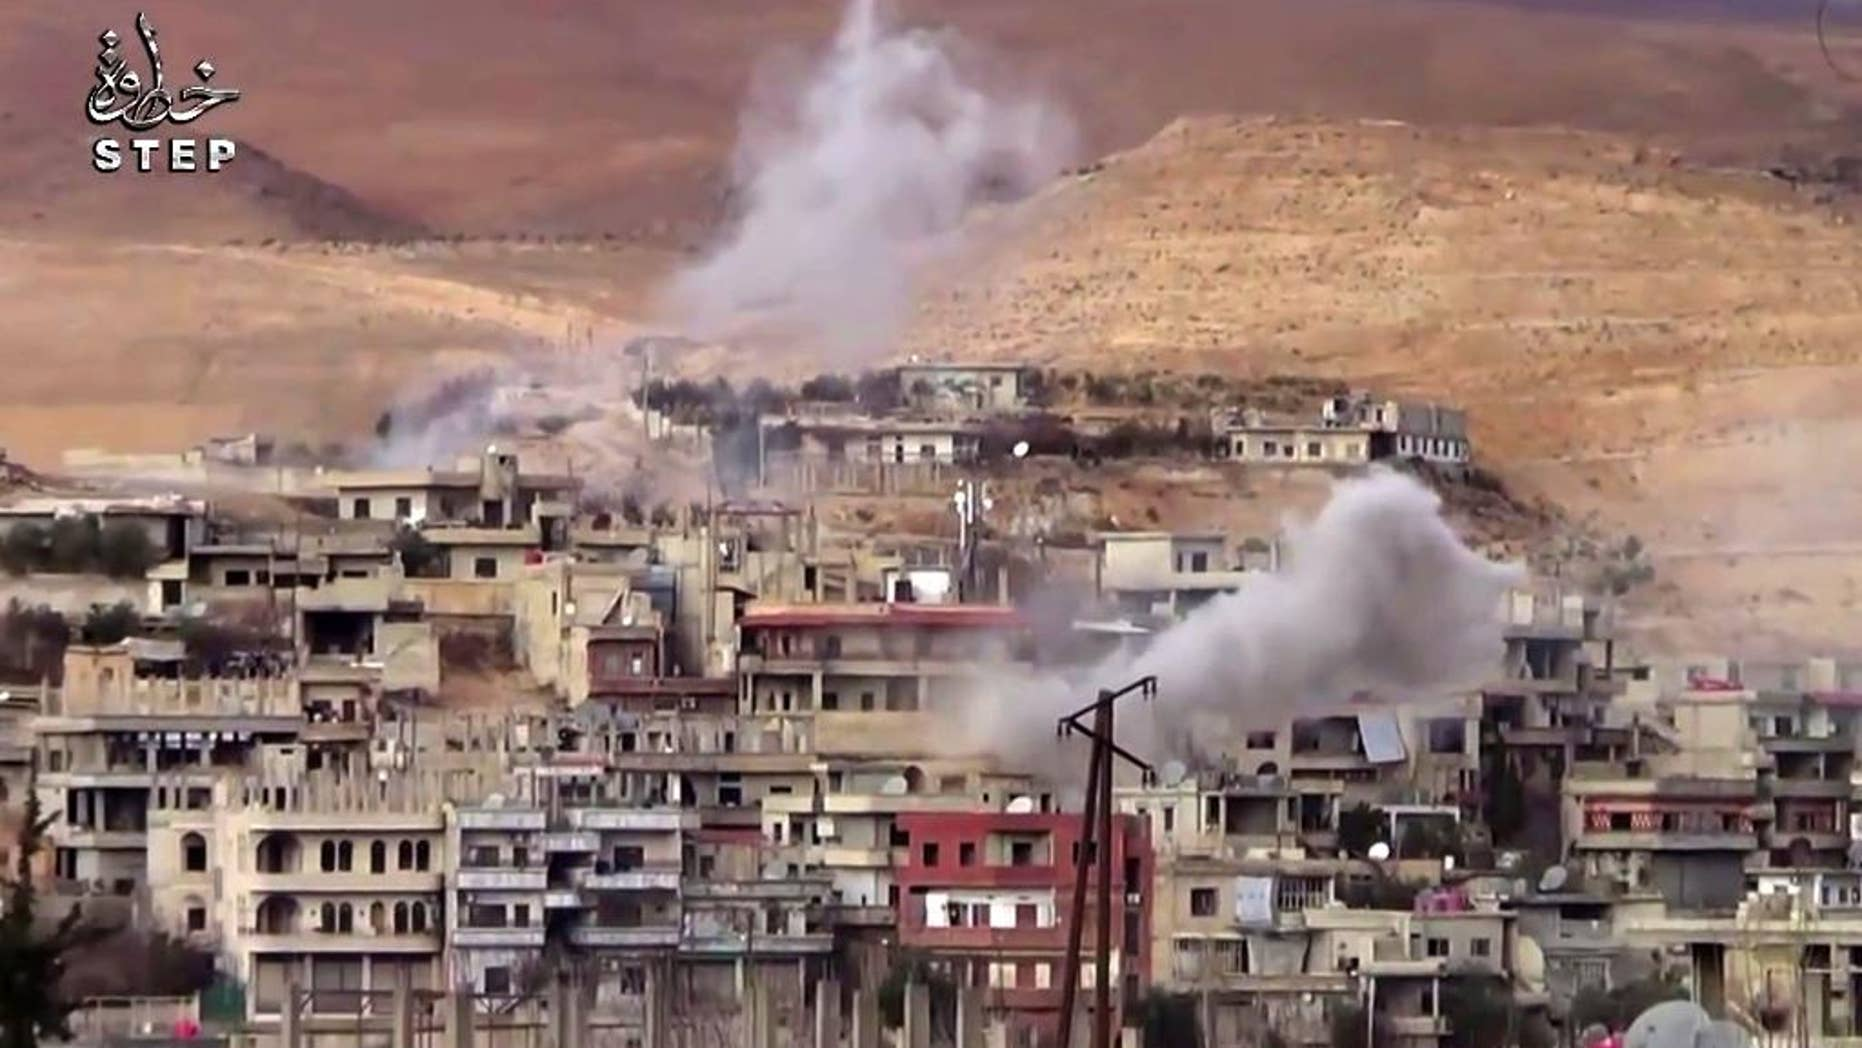 FILE - This file frame grab from video provided on Sunday, Dec. 25, 2016 by Step News Agency, a Syrian opposition media outlet that is consistent with independent AP reporting, shows smoke rise from the government forces shelling on Wadi Barada, northwest of Damascus, Syria. Opposition activists and Syria's state TV said on Friday, Jan. 13, 2017 that maintenance workers have arrived in the rebel-held valley near Damascus to fix the water facility there, ending a violent standoff that has dried out the capital for weeks. (Step News Agency, via AP, File)